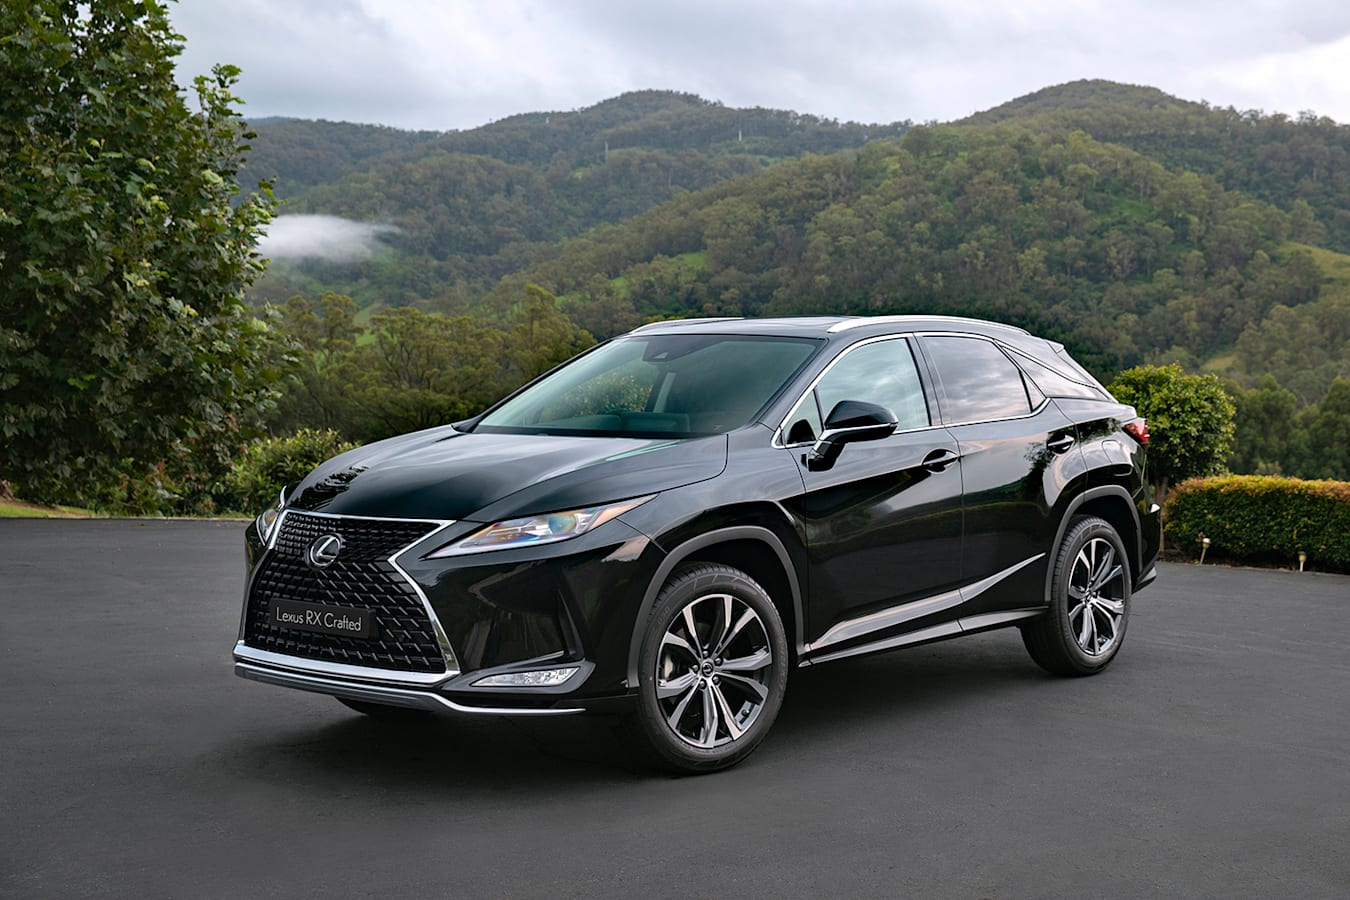 Lexus RX Crafted Edition 2021